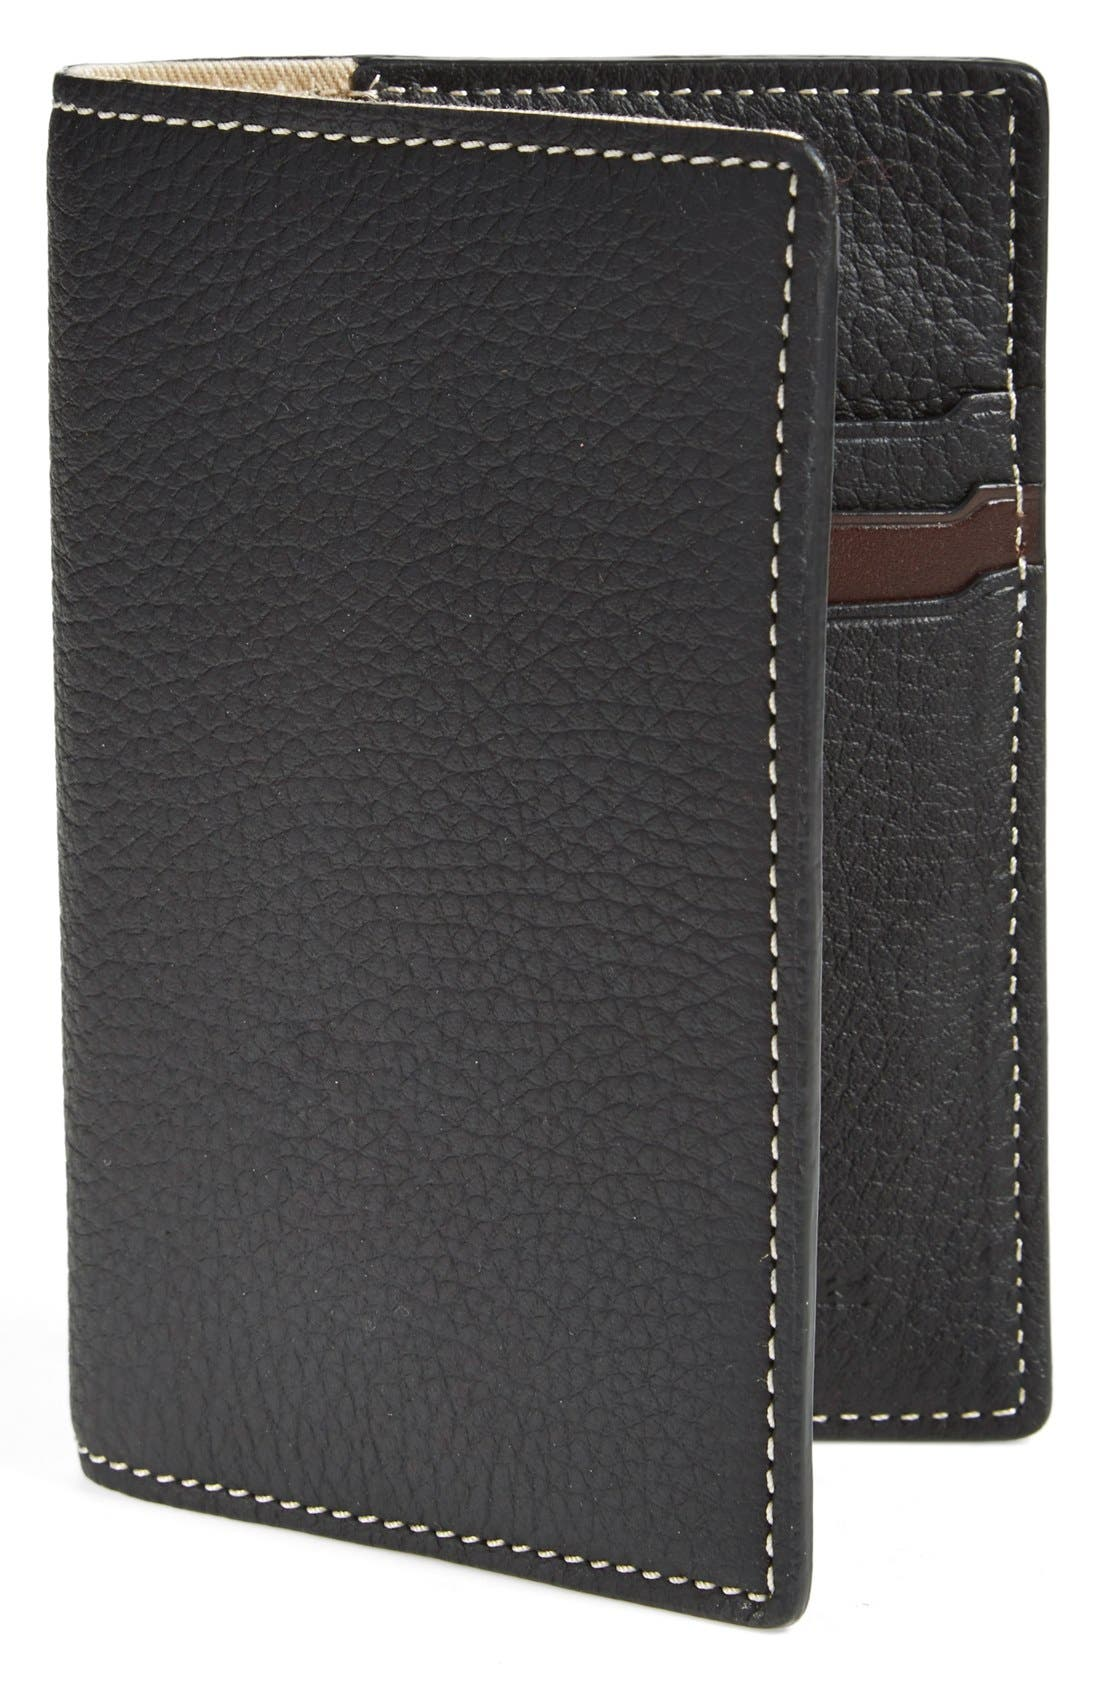 'Jackson' Norwegian Elk Leather Passport Holder,                         Main,                         color, Black Norwegian Elk